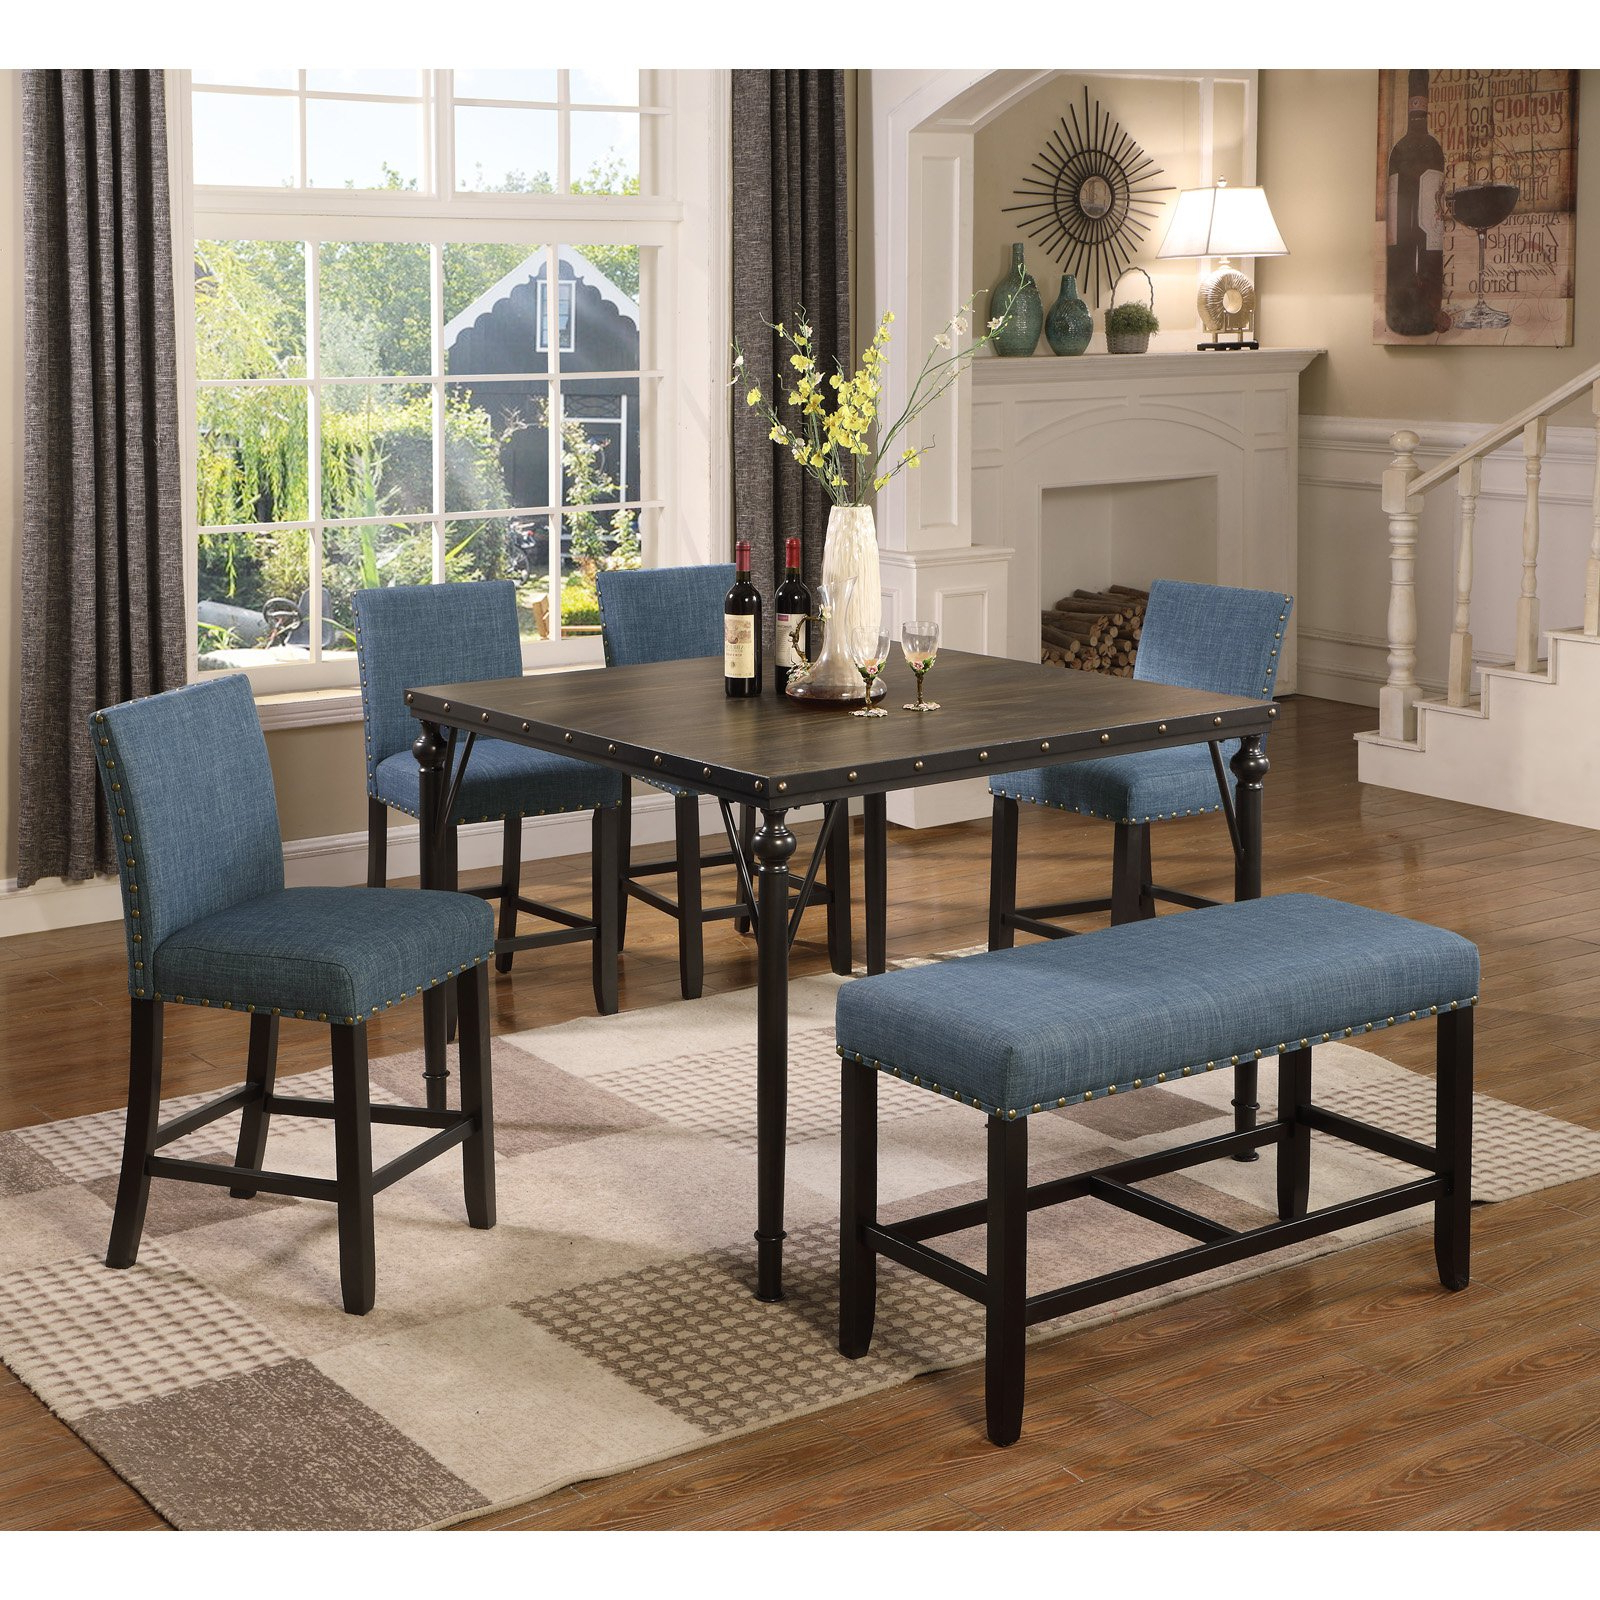 Roundhill Furniture Biony 6 Piece Square Counter Height with regard to Most Recent Benchwright Bar Height Dining Tables